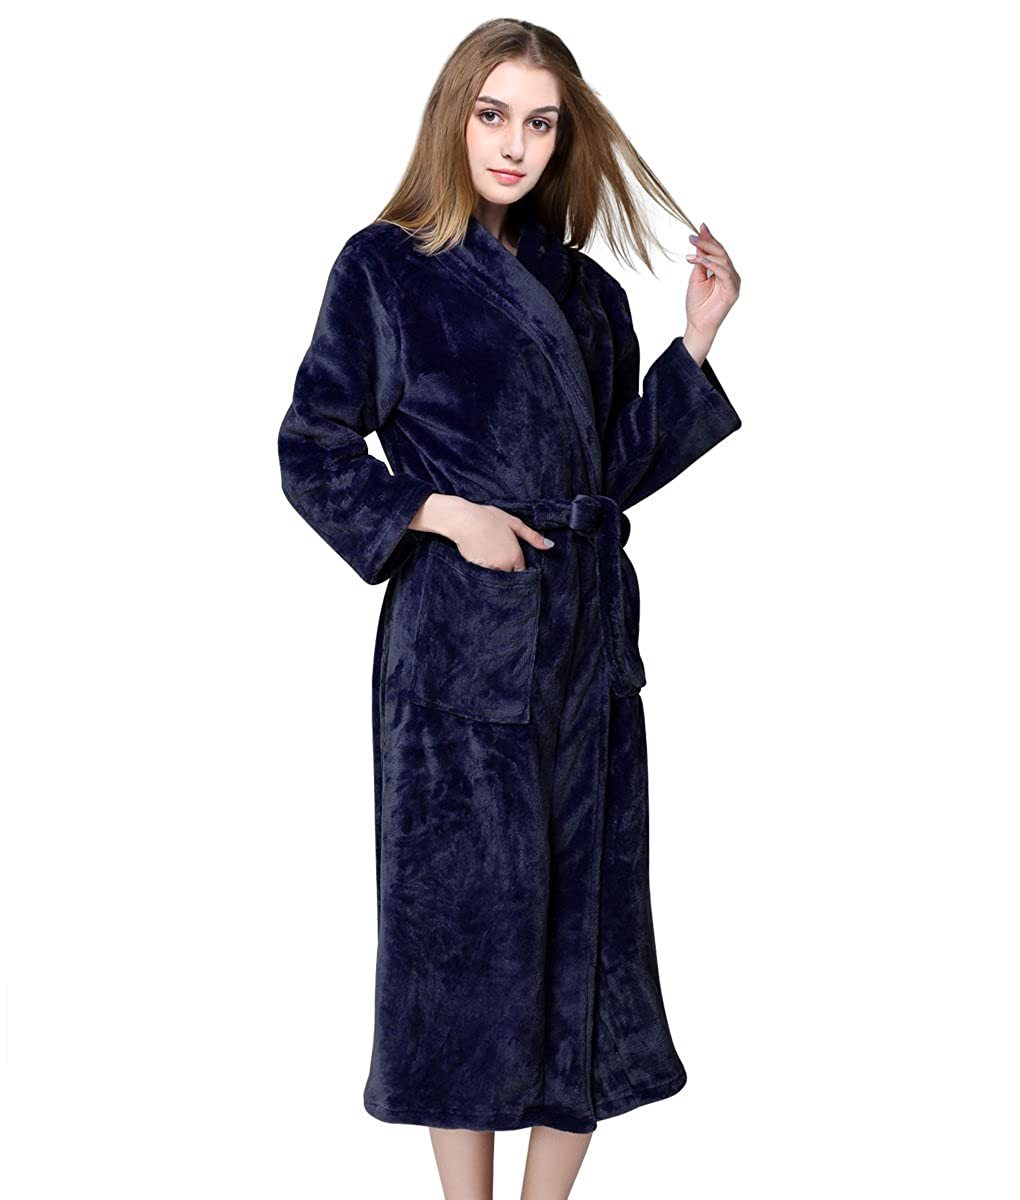 61425089b4 Unisex Soft Plush Fleece Robe with Pockets Long Shawl Collar Bath Robe Warm  Bathrobes for Women and Men at Amazon Women s Clothing store